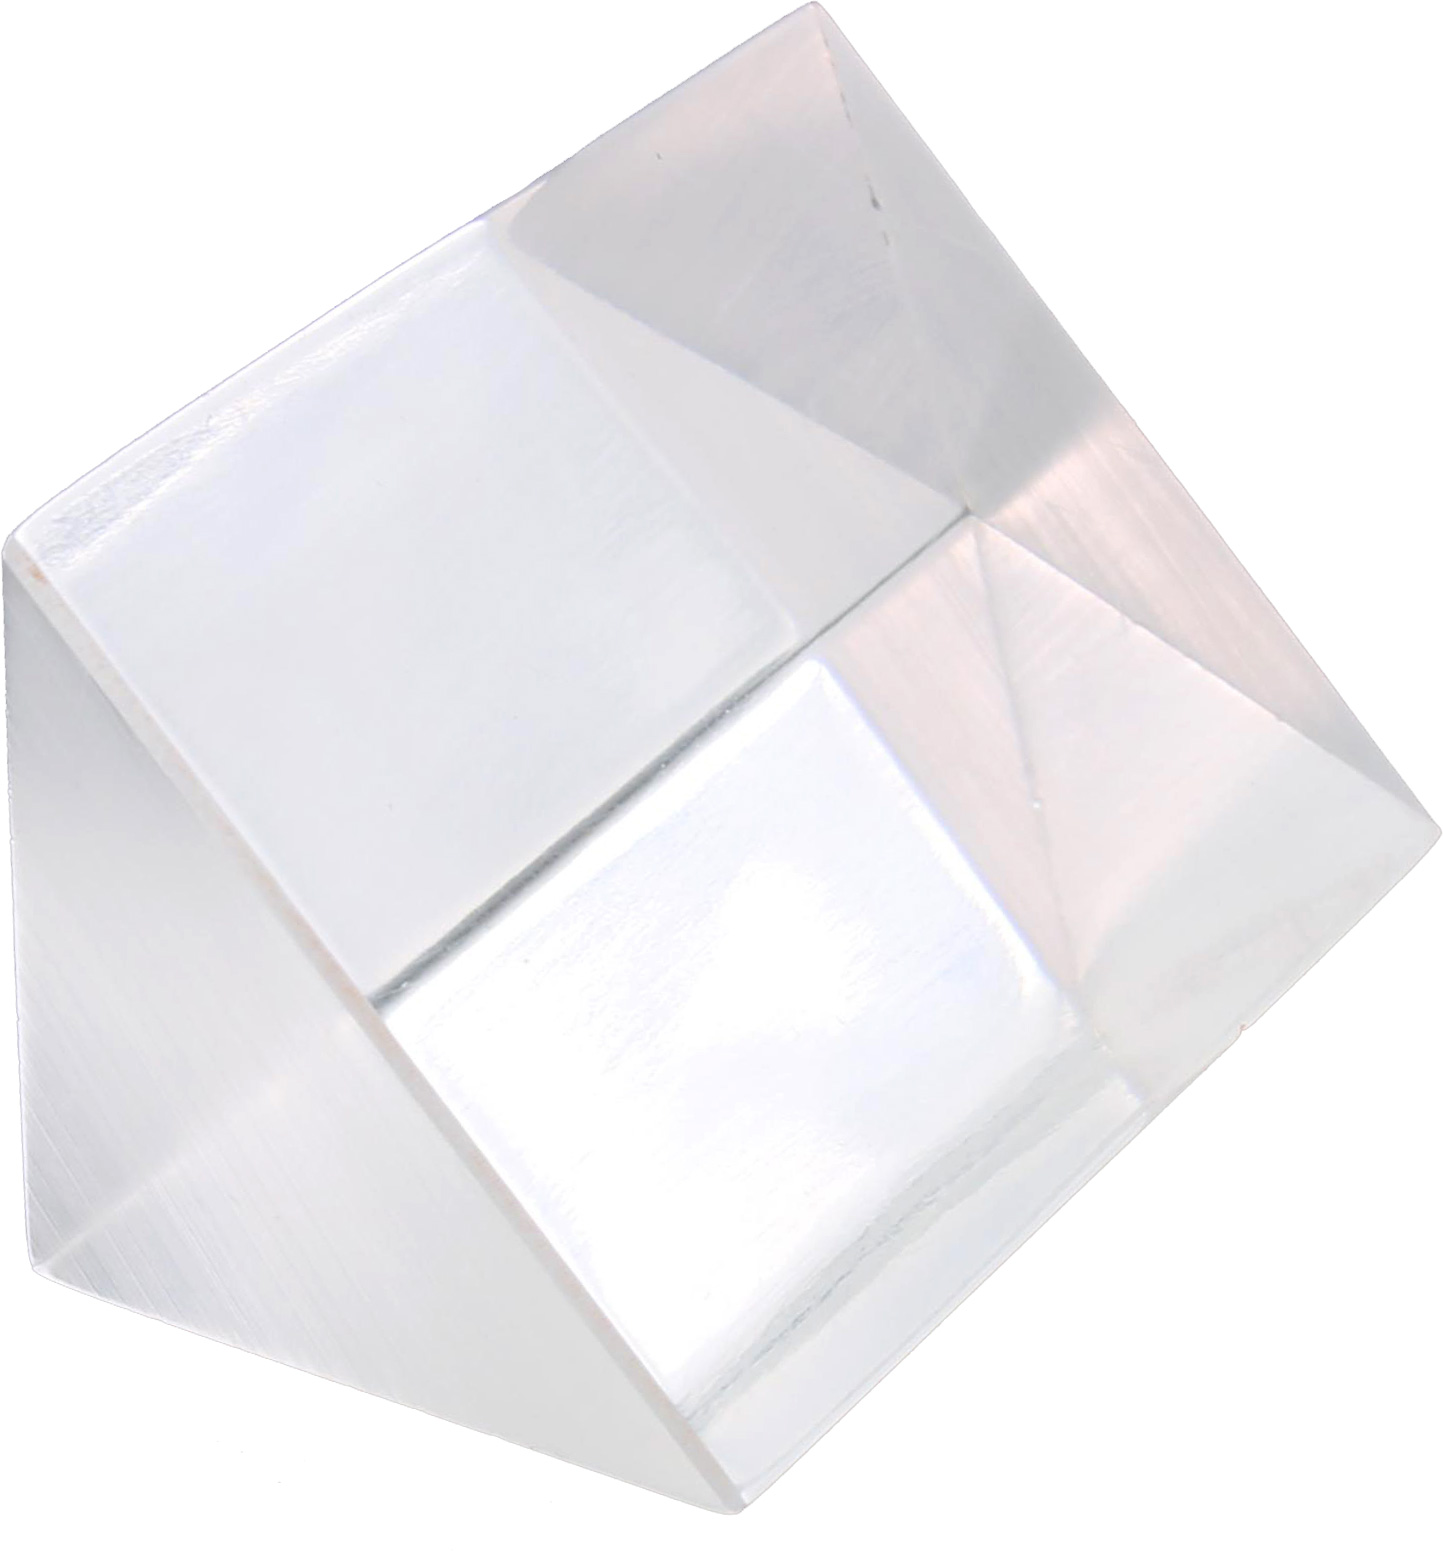 Right-Angle Acrylic Prism - 1 x 2 inches - Image one